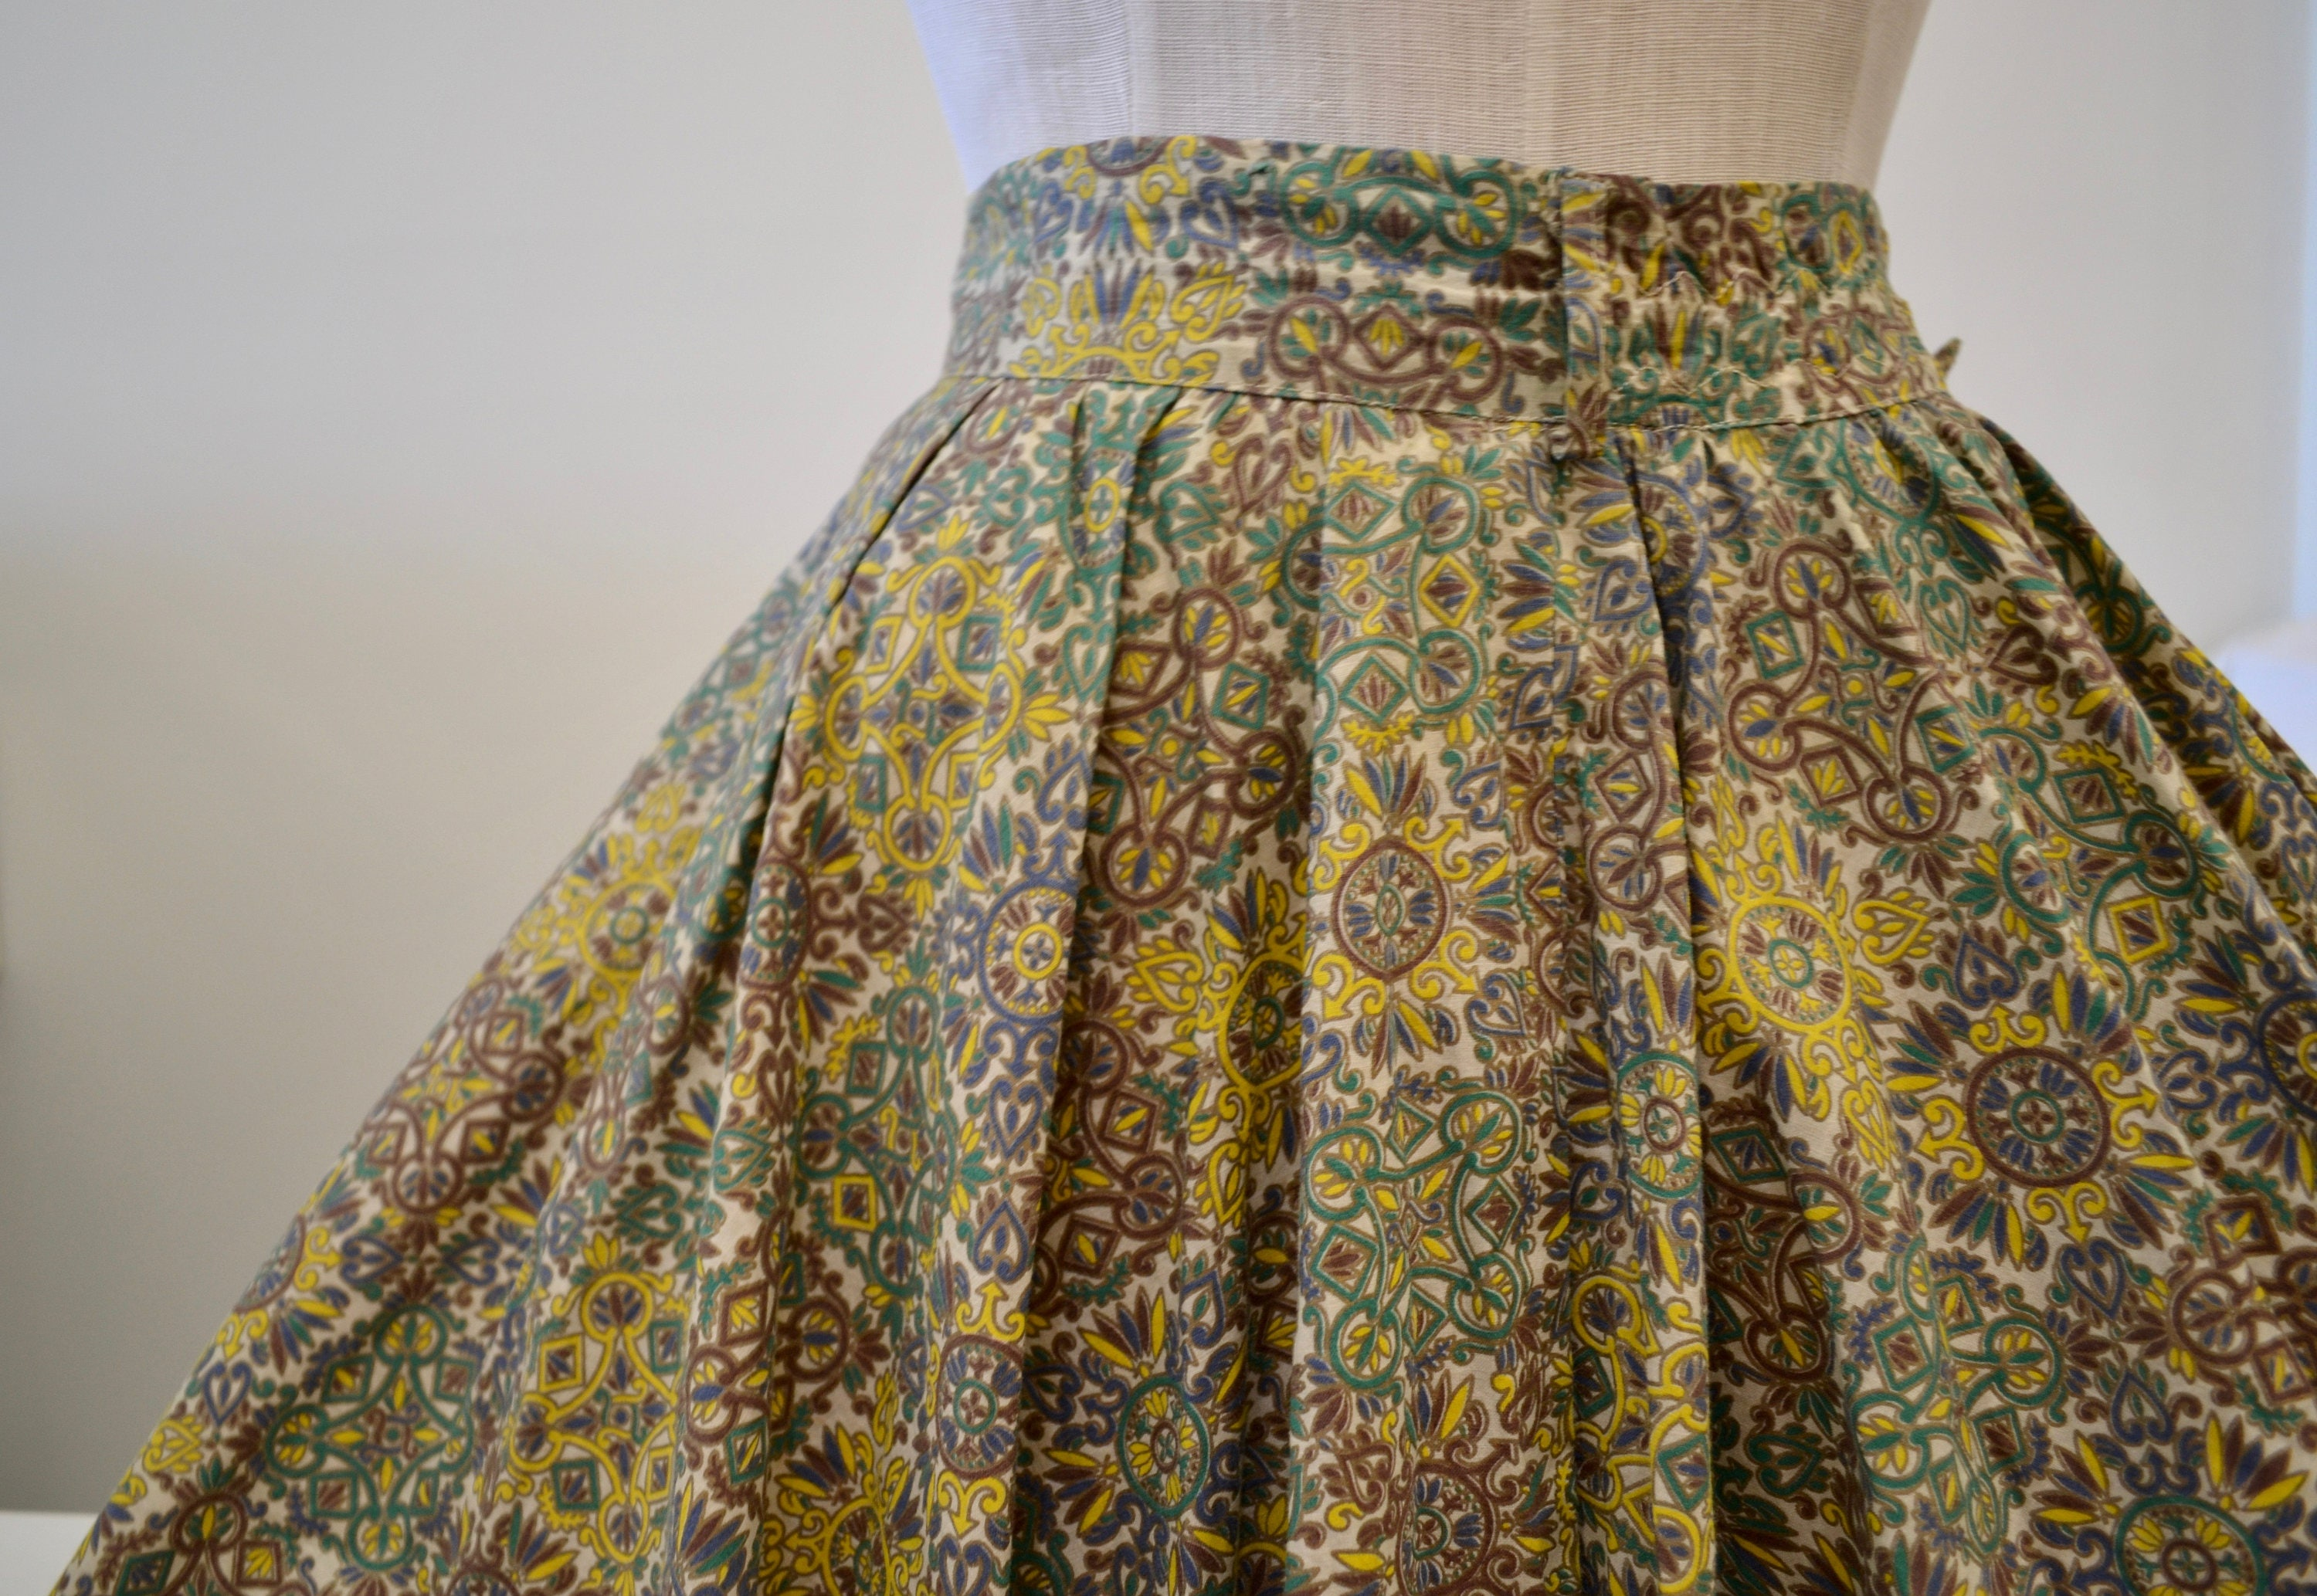 1950s Hats: Pillbox, Fascinator, Wedding, Sun Hats 1950s Vintage Medallion Printed Cotton Circle Skirt With Belt Looped Band 26 Waist Mildreds Couture Gorgeous Lofting Twirling $0.00 AT vintagedancer.com